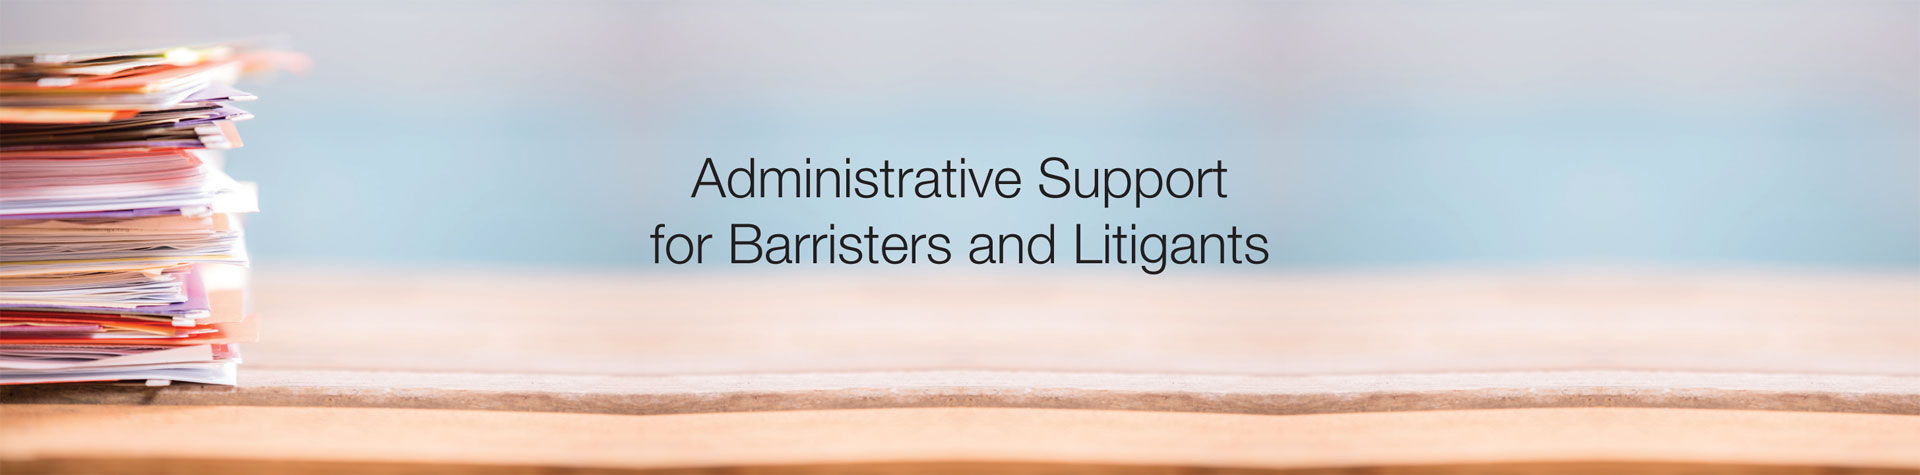 Admin support for Barristers & Litigants in person